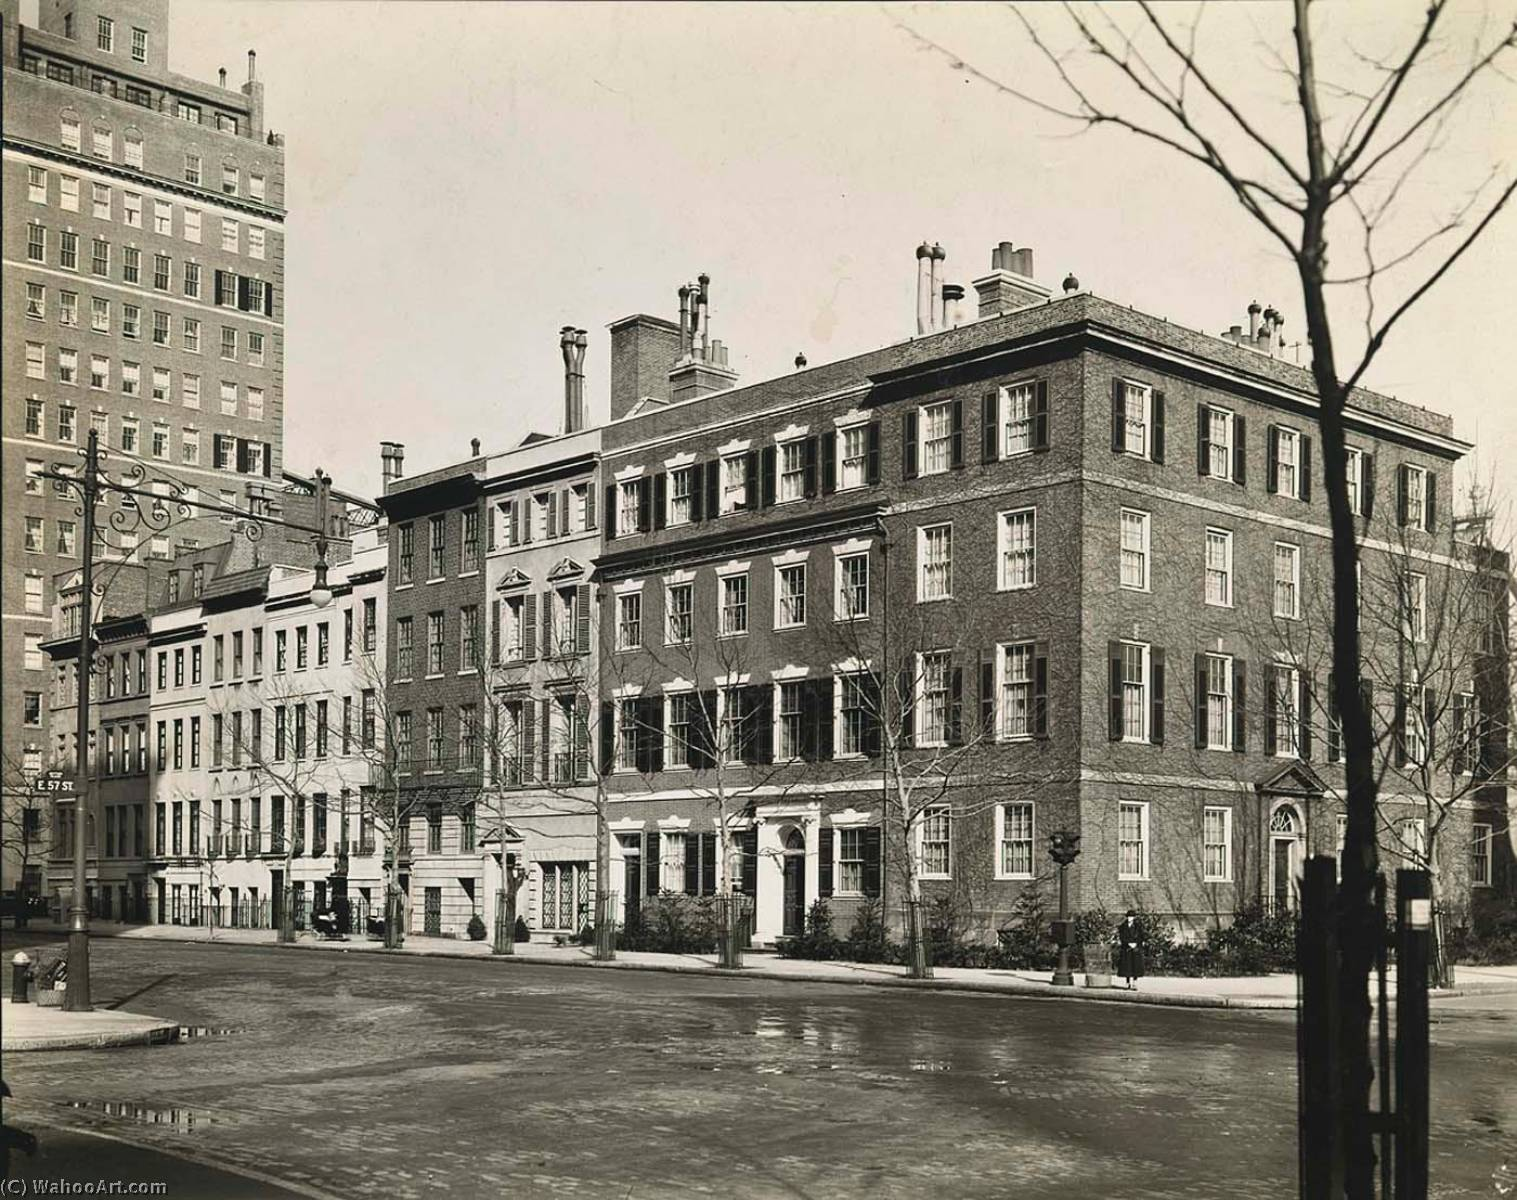 Sutton Place, Anne Morgan's Townhouse on Corner, Northeast Corner of East 57th Street, Manhattan, Print by Berenice Abbott (1898-1991, United States)